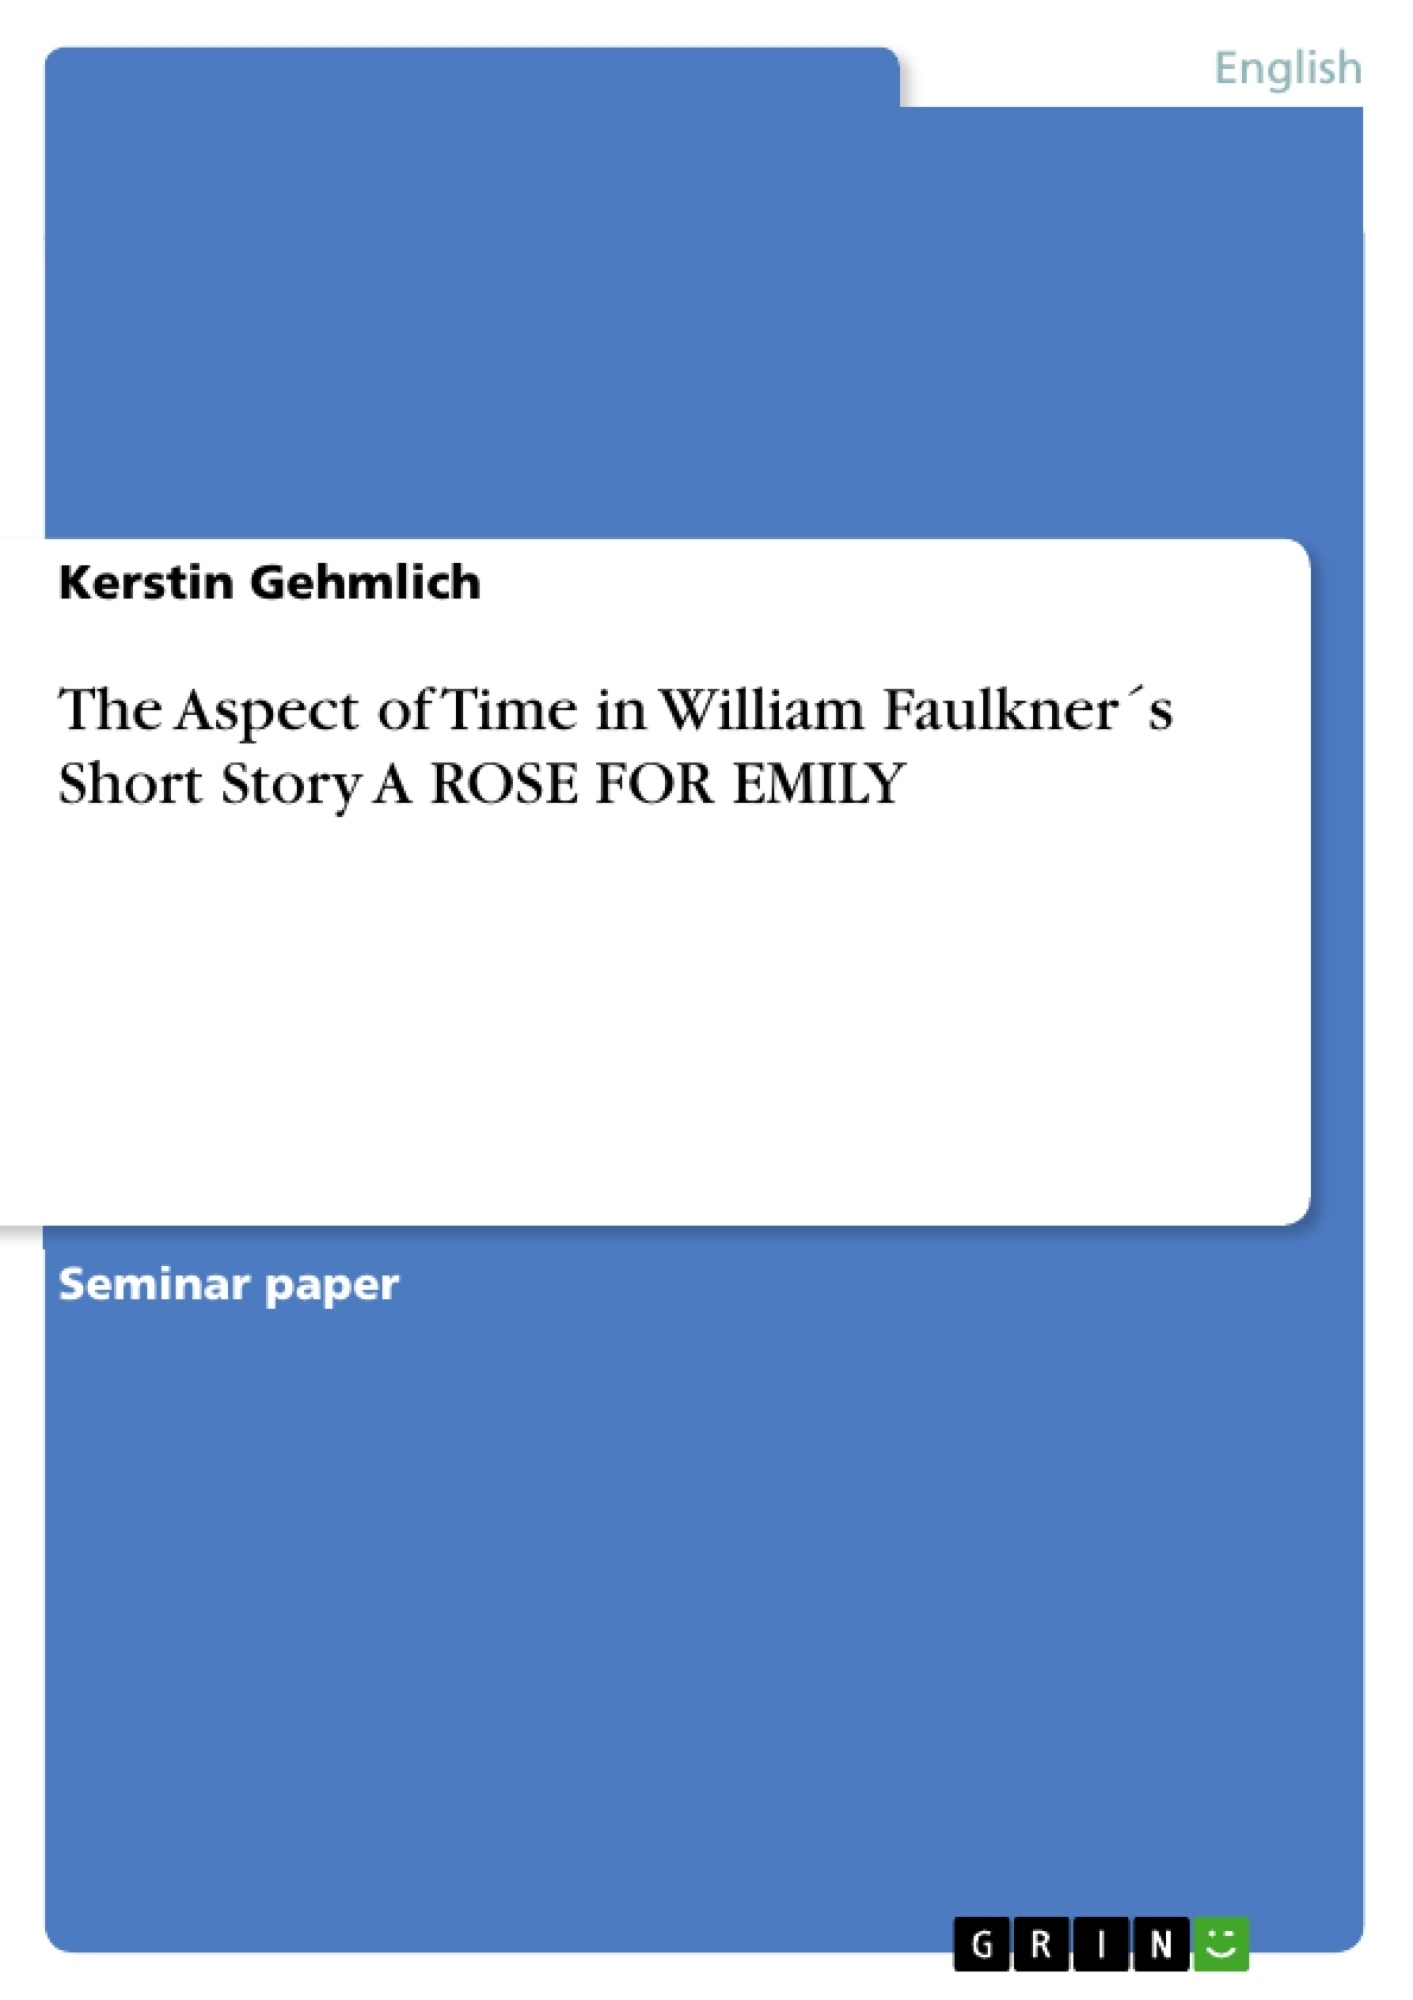 Title: The Aspect of Time in William Faulkner´s Short Story A ROSE FOR EMILY